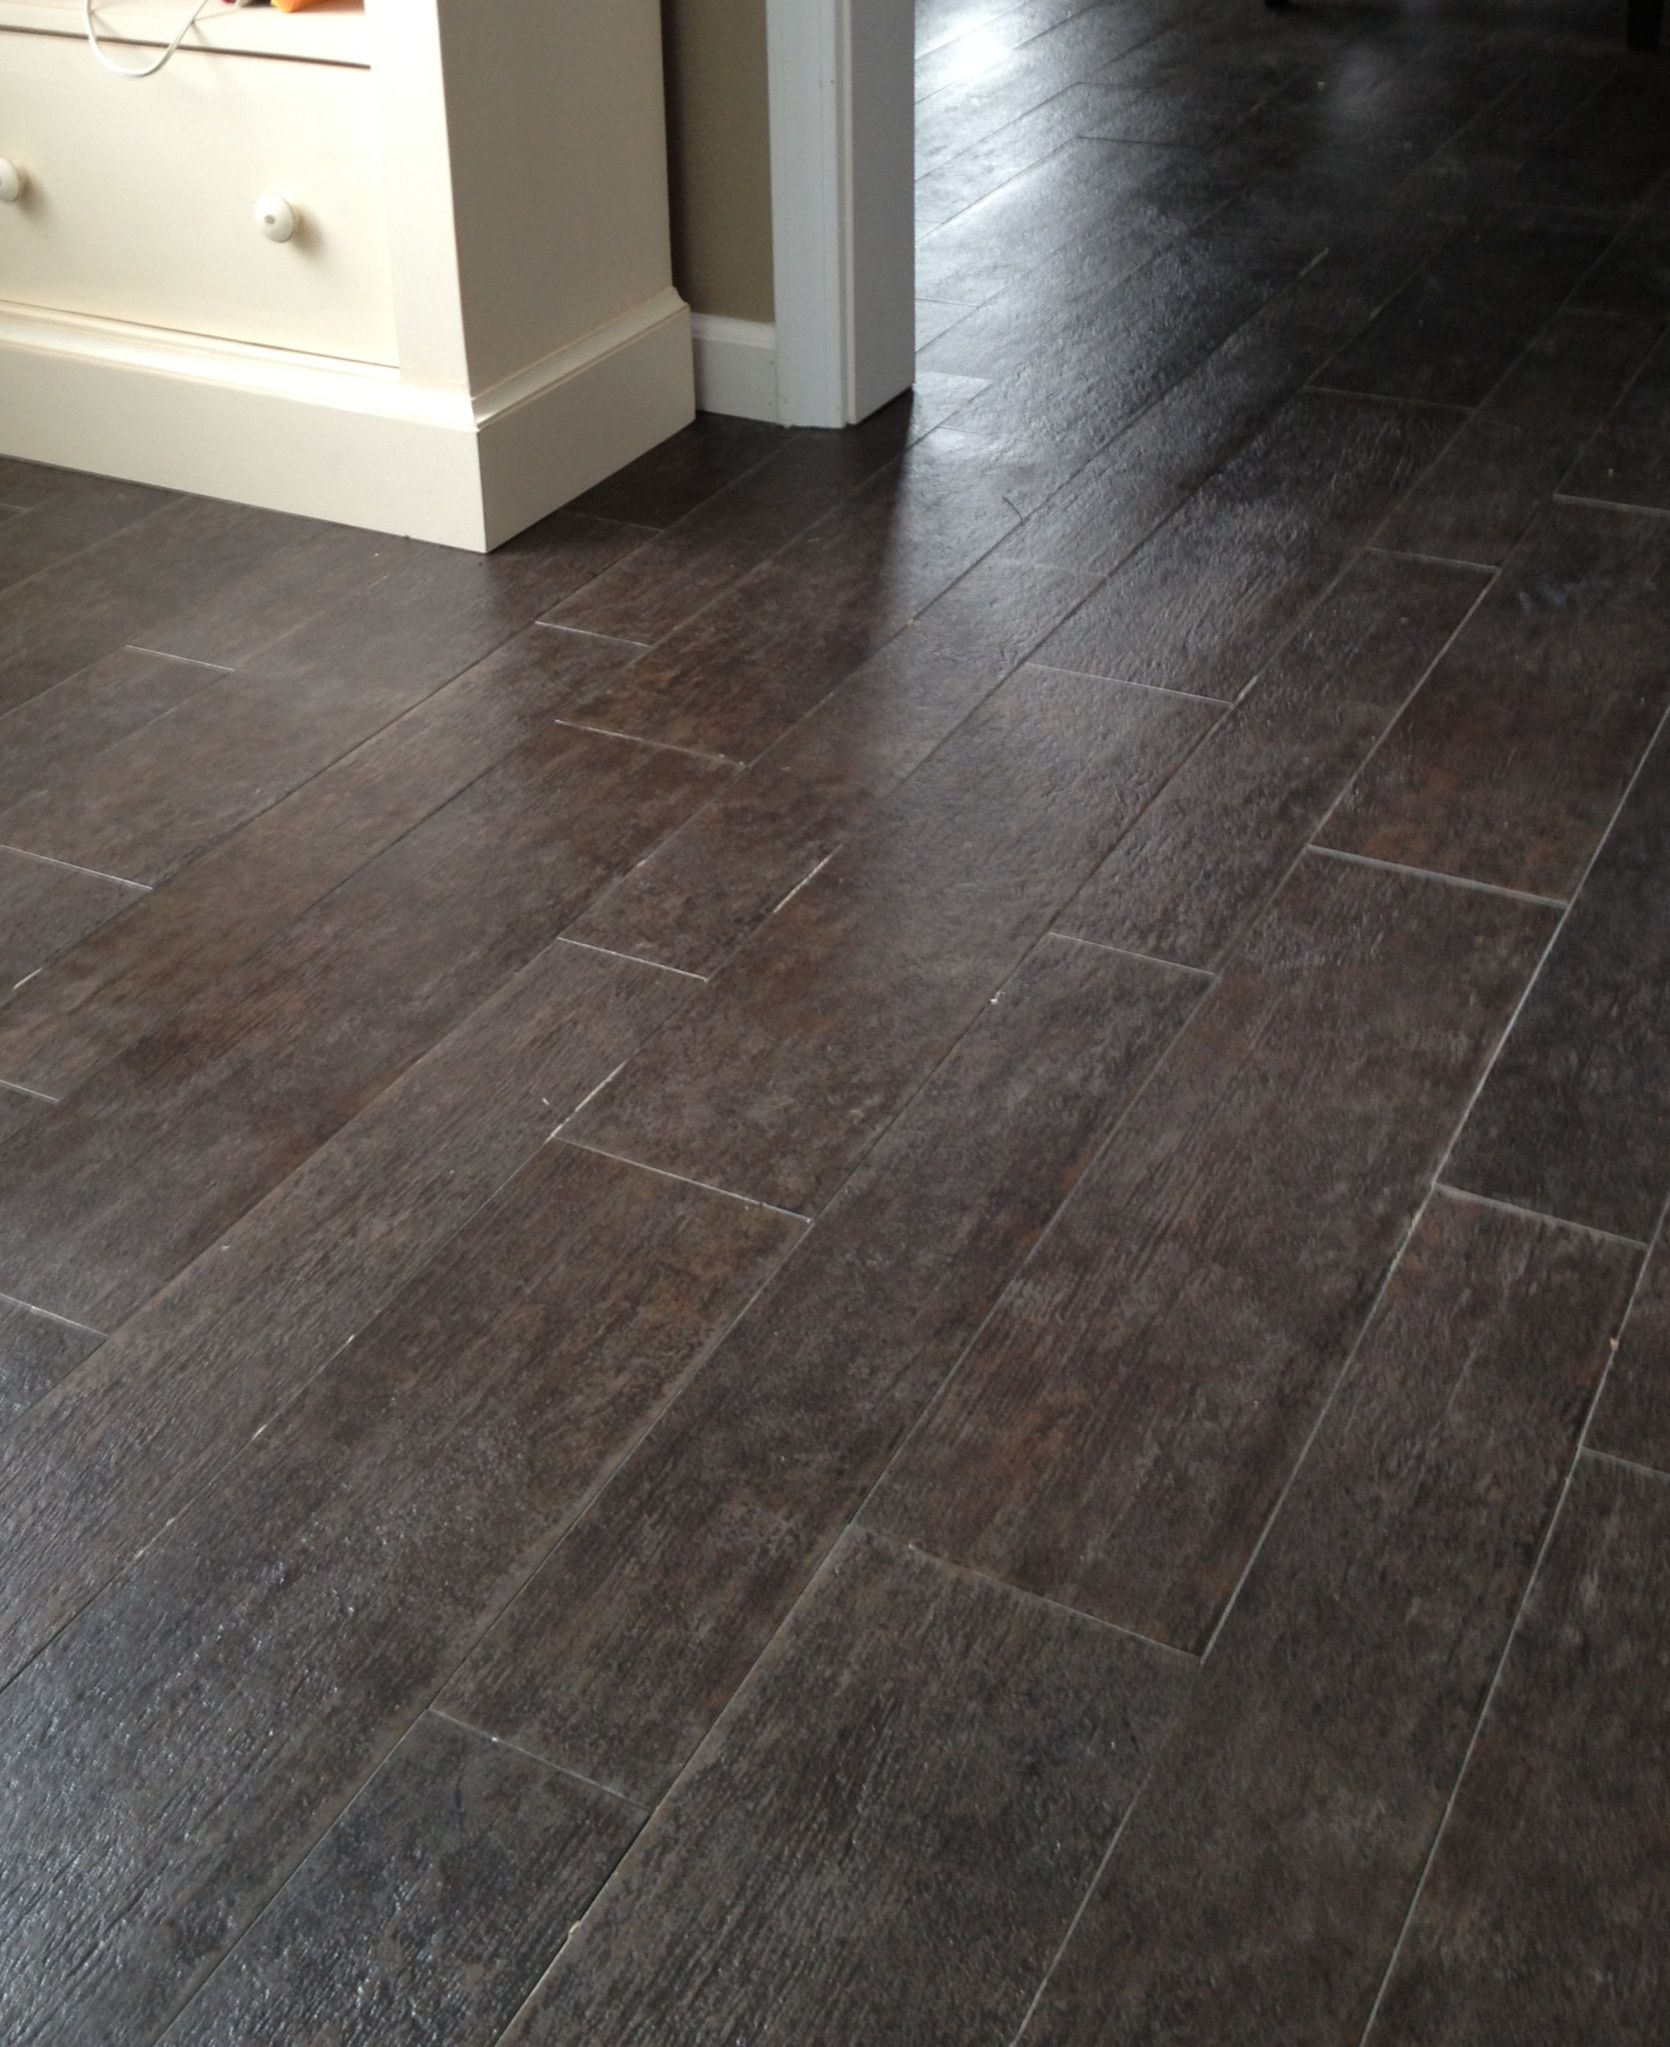 Marazzi tile planks yes its tile not hardwood in ebony for Marazzi tile